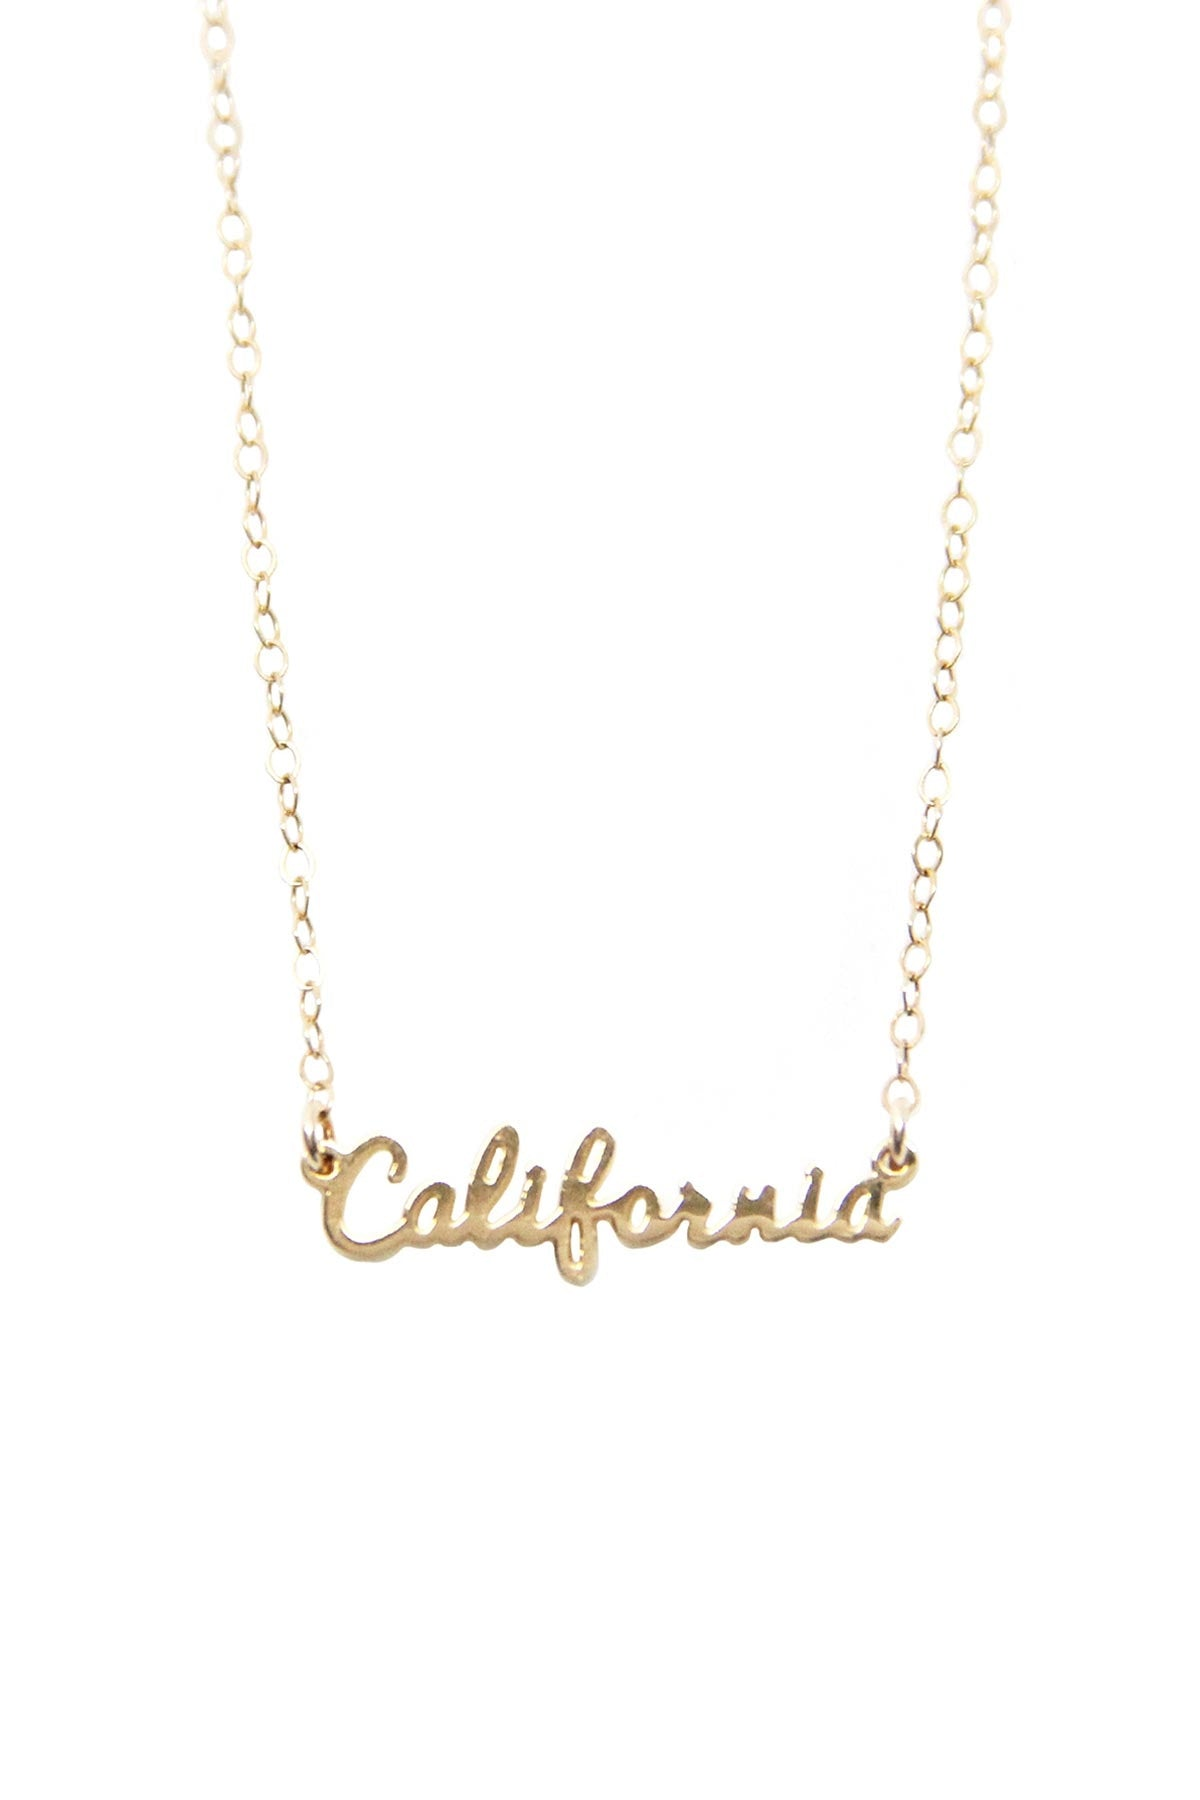 CALIFORNIA SCRIPT NECKLACE by SEOUL LITTLE